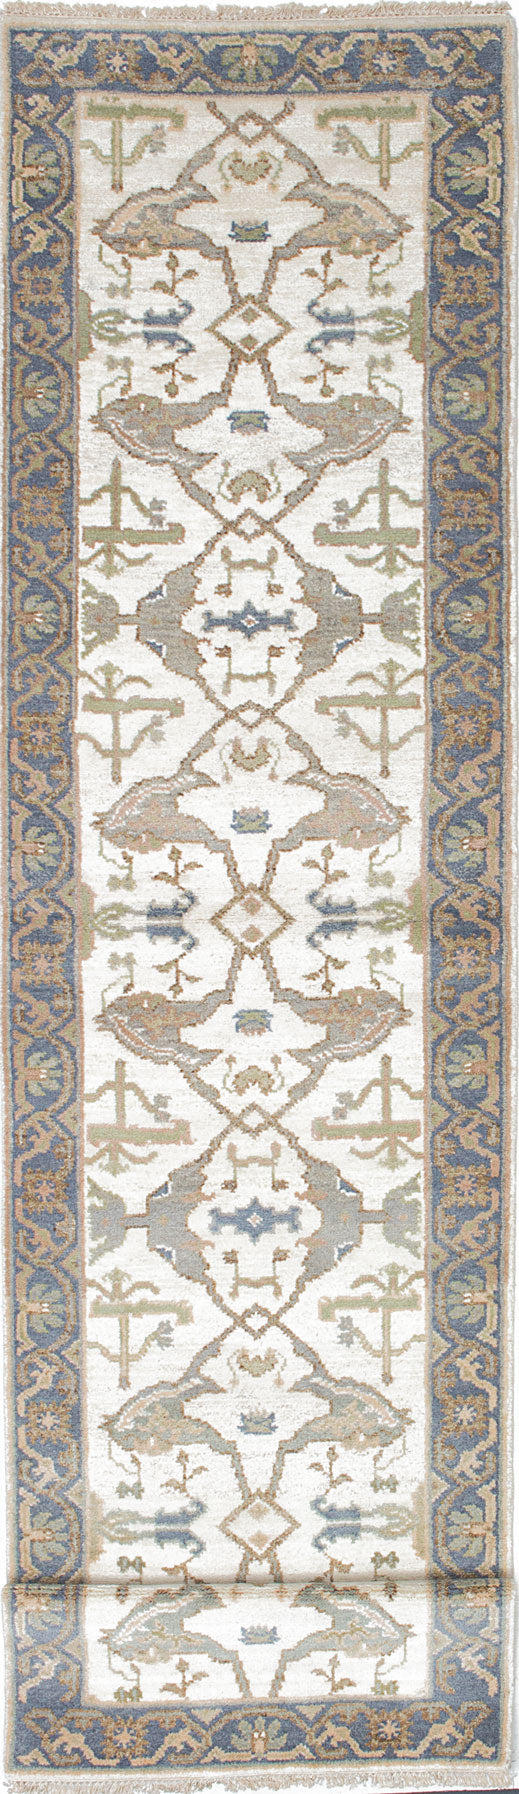 Hand-knotted Indian Floral  Traditional Royal-Ushak Runner rug  Grey, Light Yellow 2.8 x 11.9